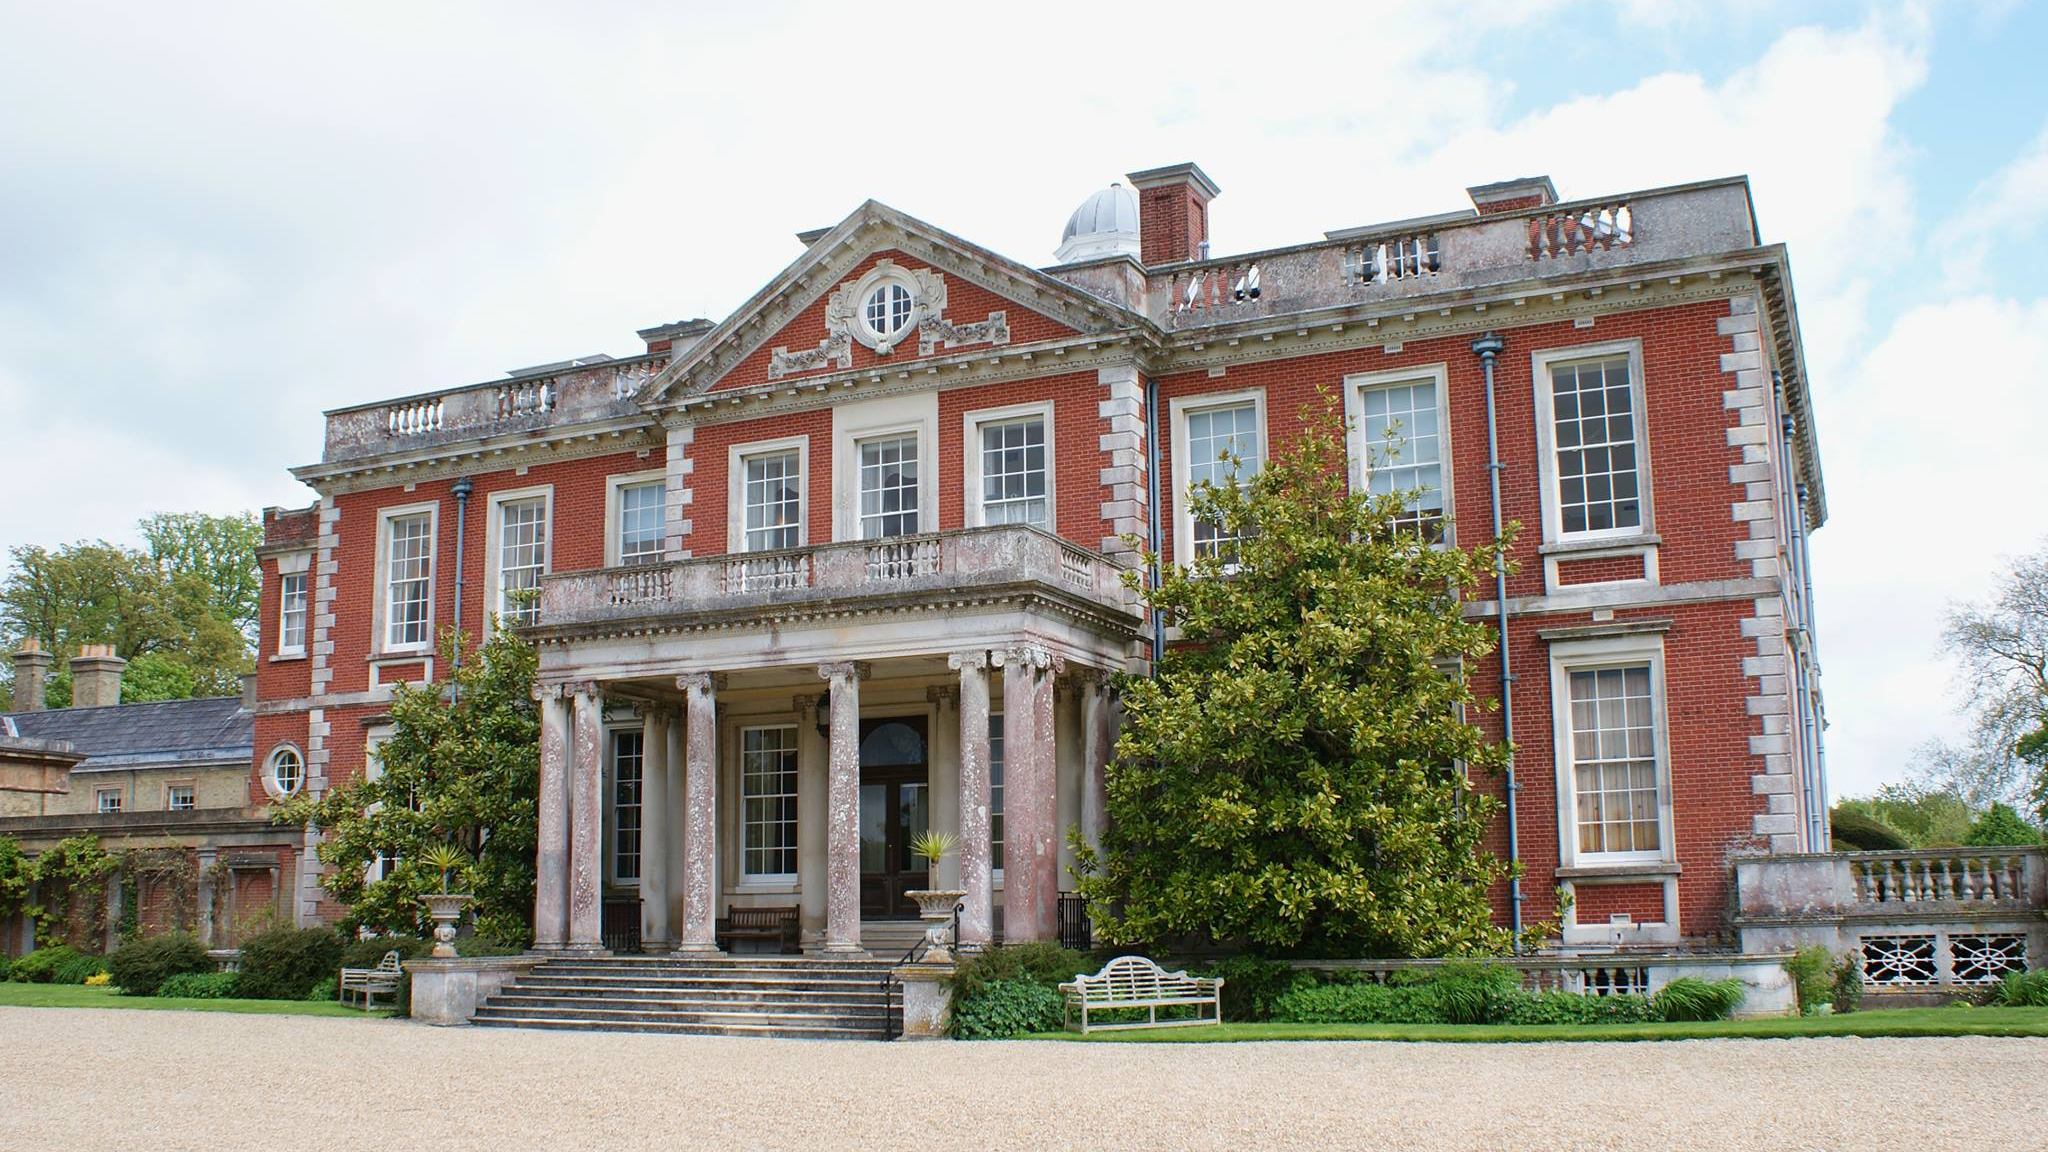 Stansted Park House & Grounds